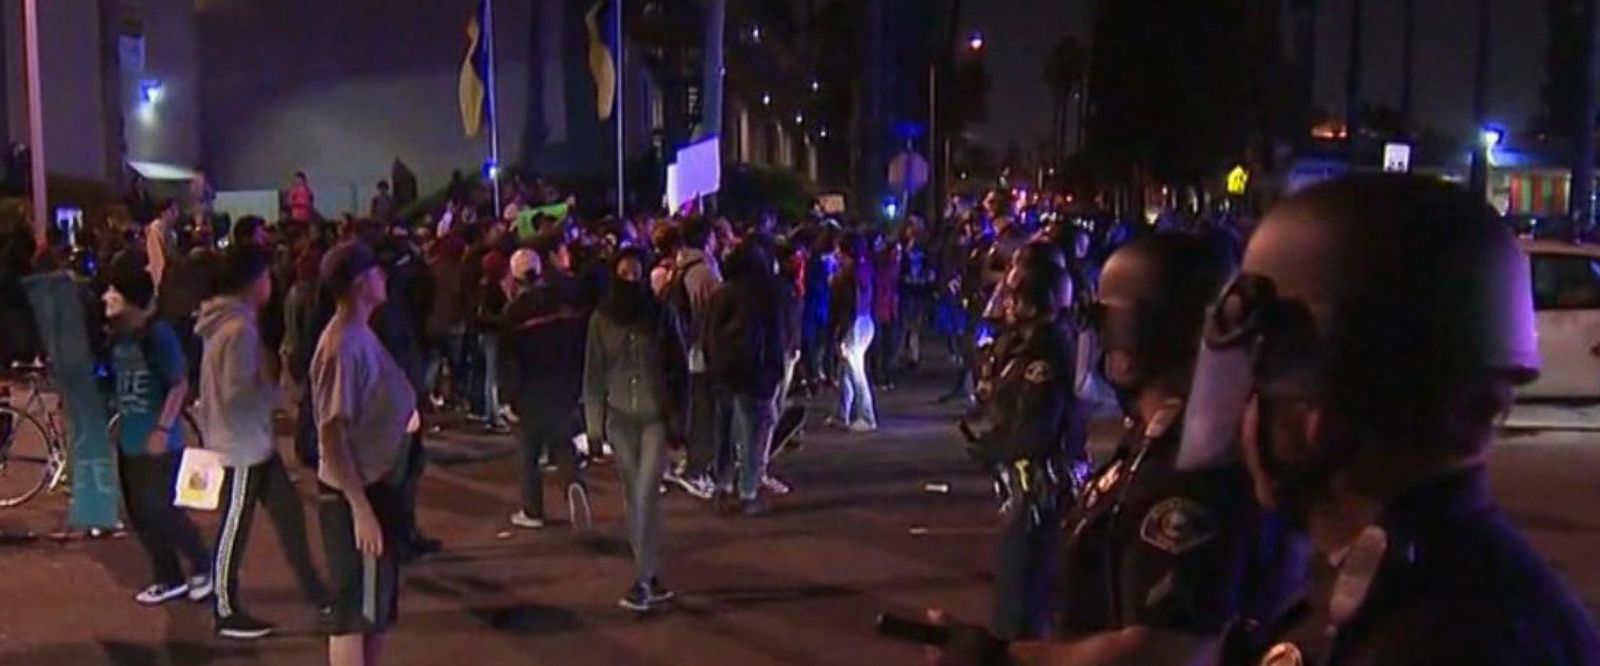 VIDEO: Off-duty LAPD officer's clash with teens sparks protests